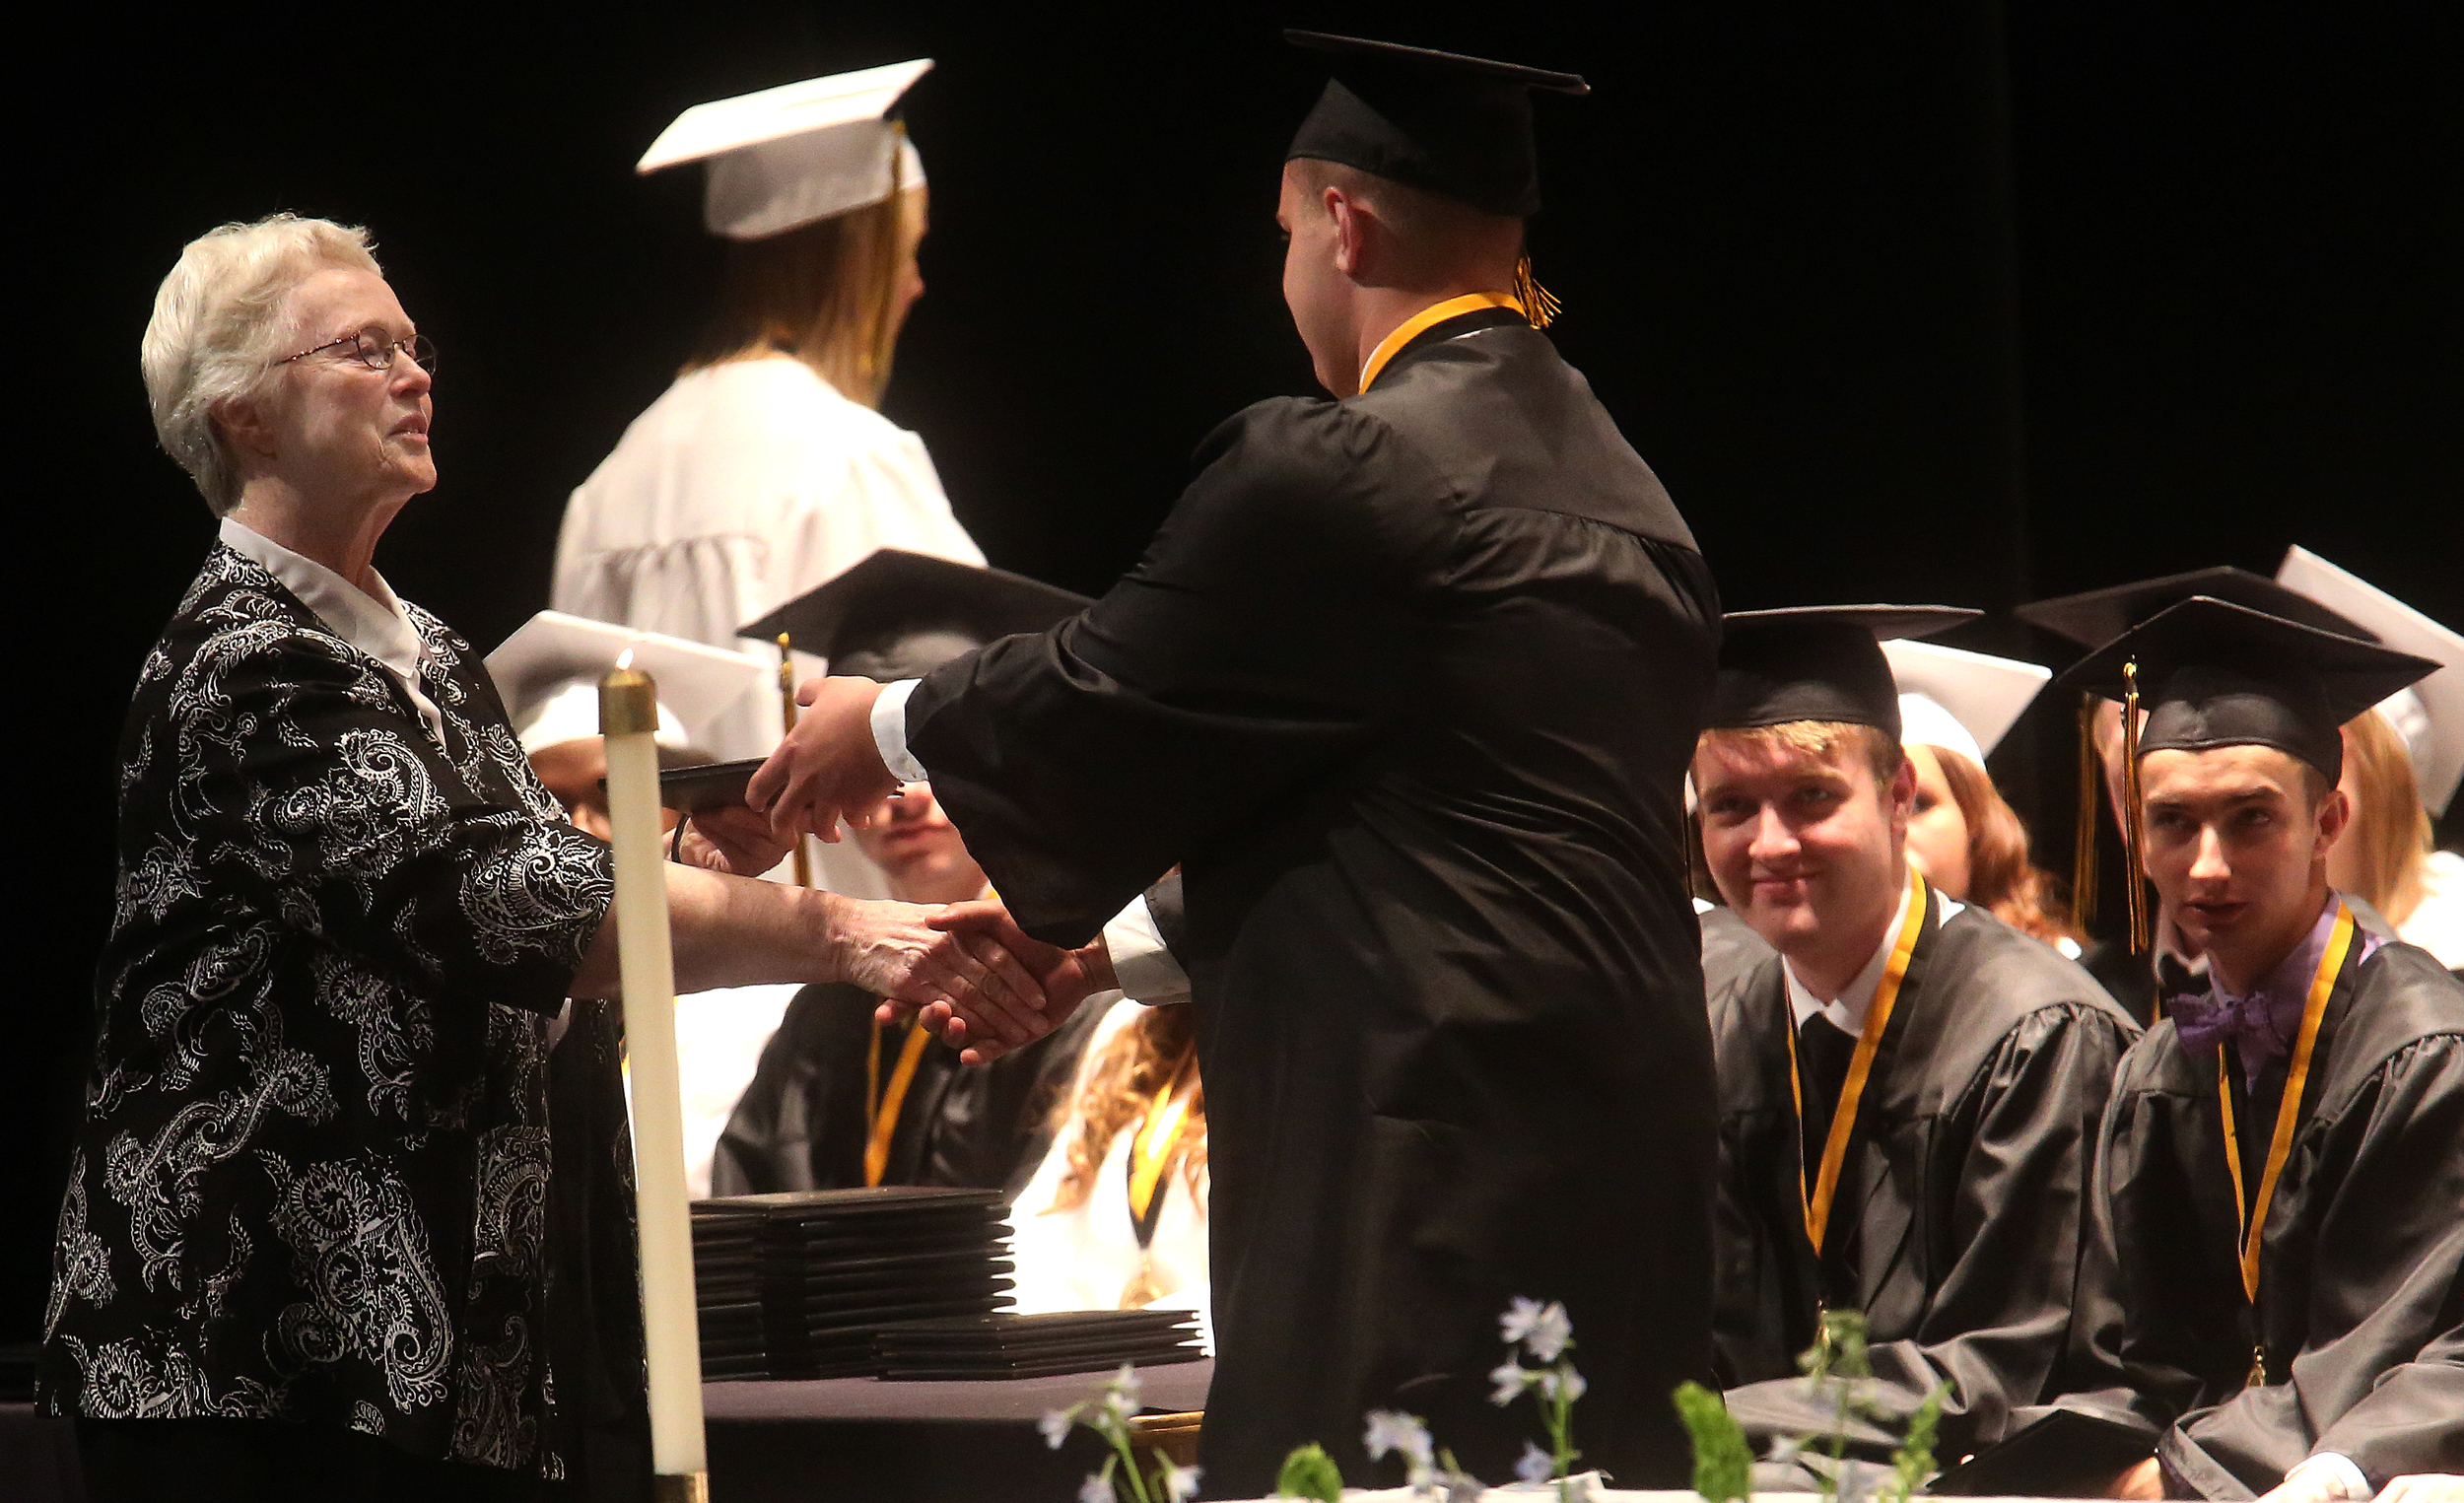 Sister Katherine O'Connor, president of SHG, presented diplomas to graduating students on Sunday. She shared the honor with SHG Principal Sister Margaret Joanne Grueter. David Spencer/The State Journal-Register